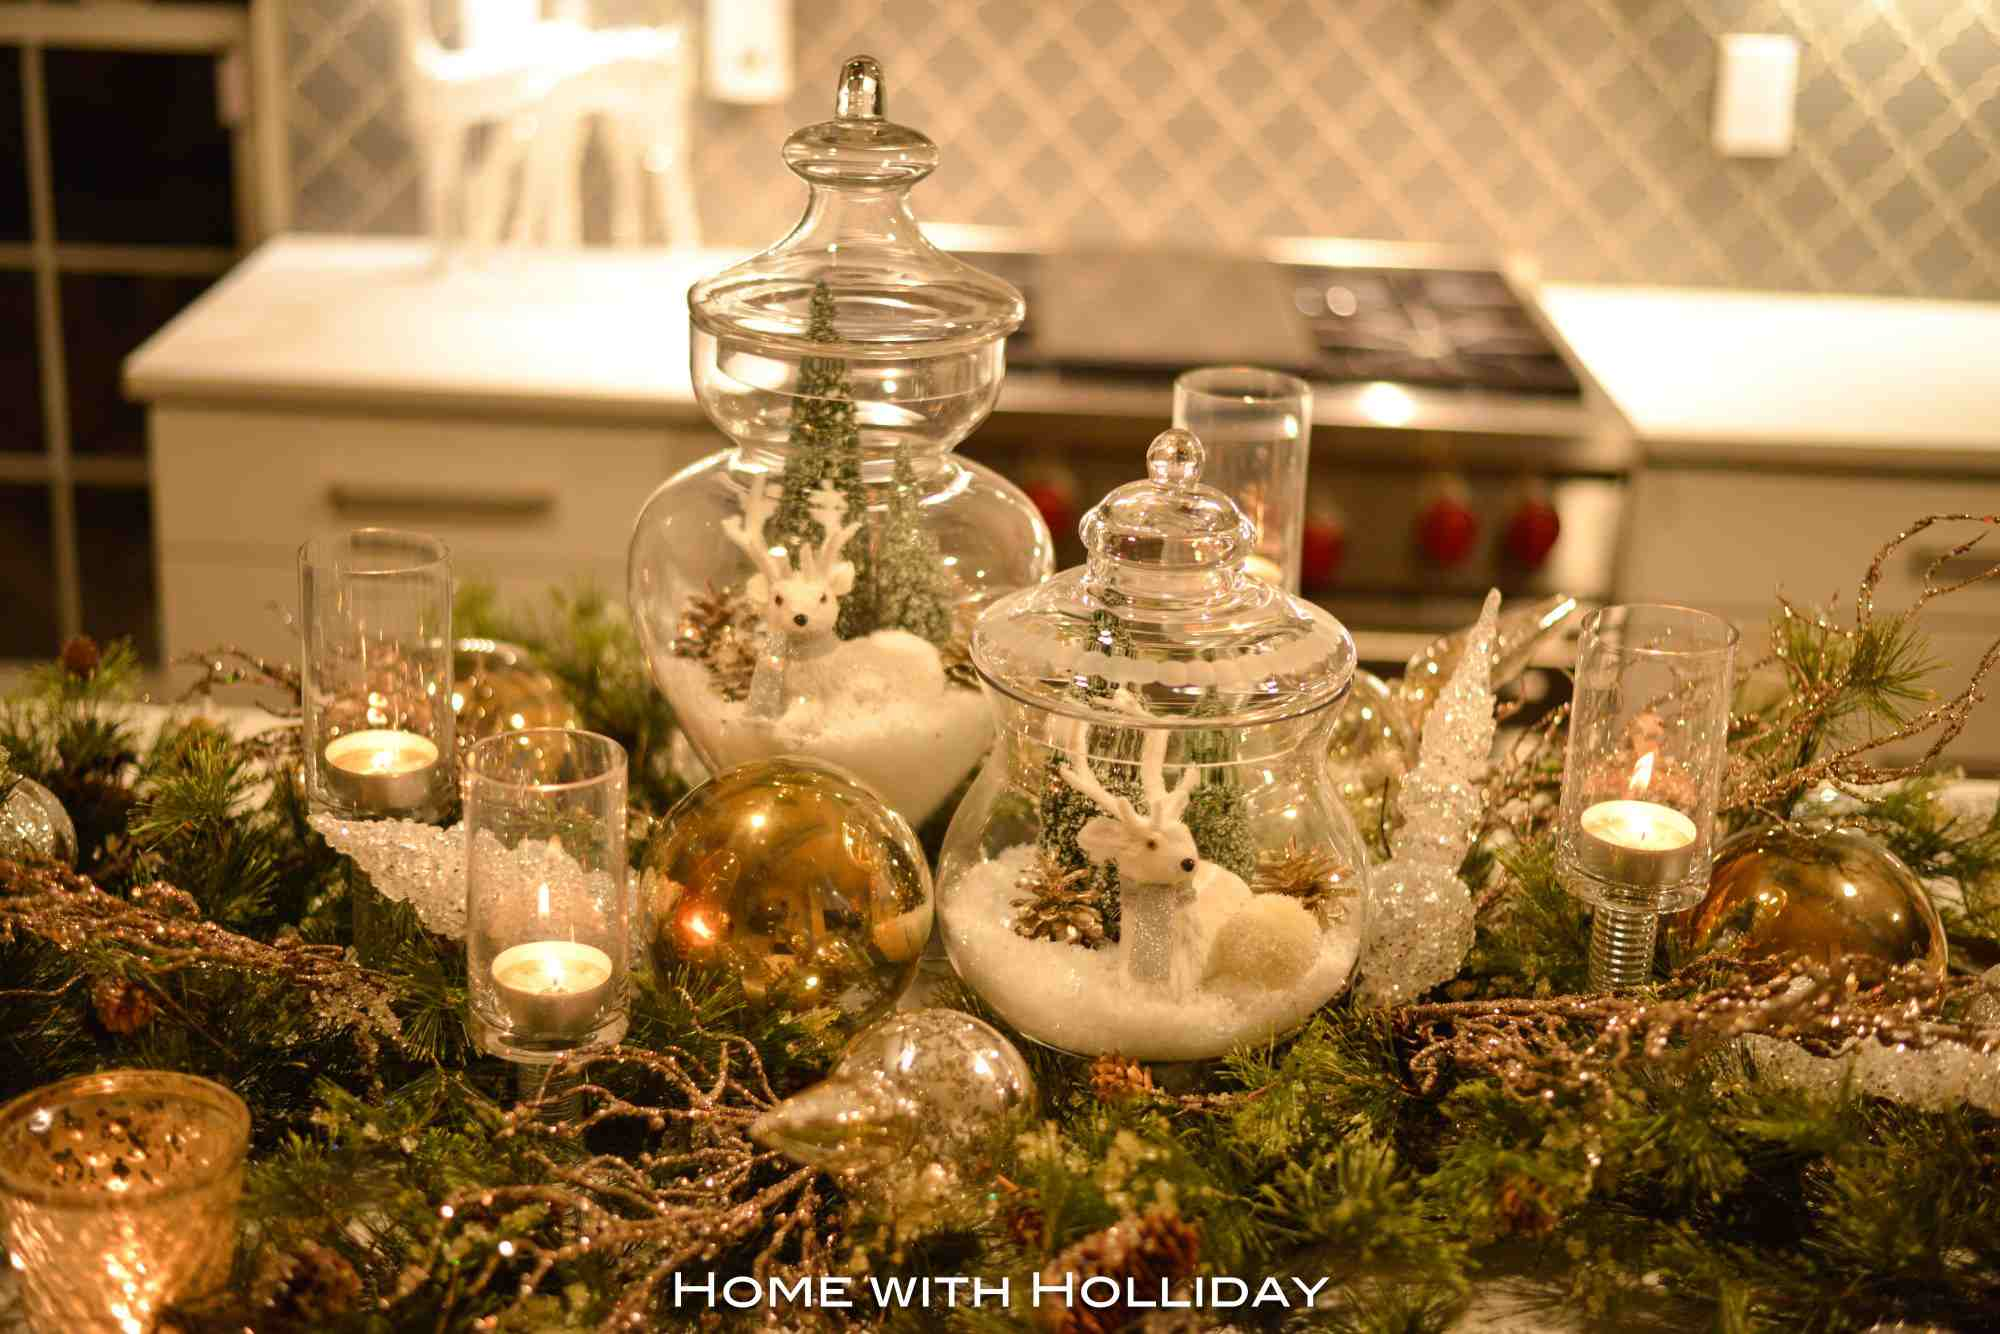 Apothecary jars used as a centerpiece.